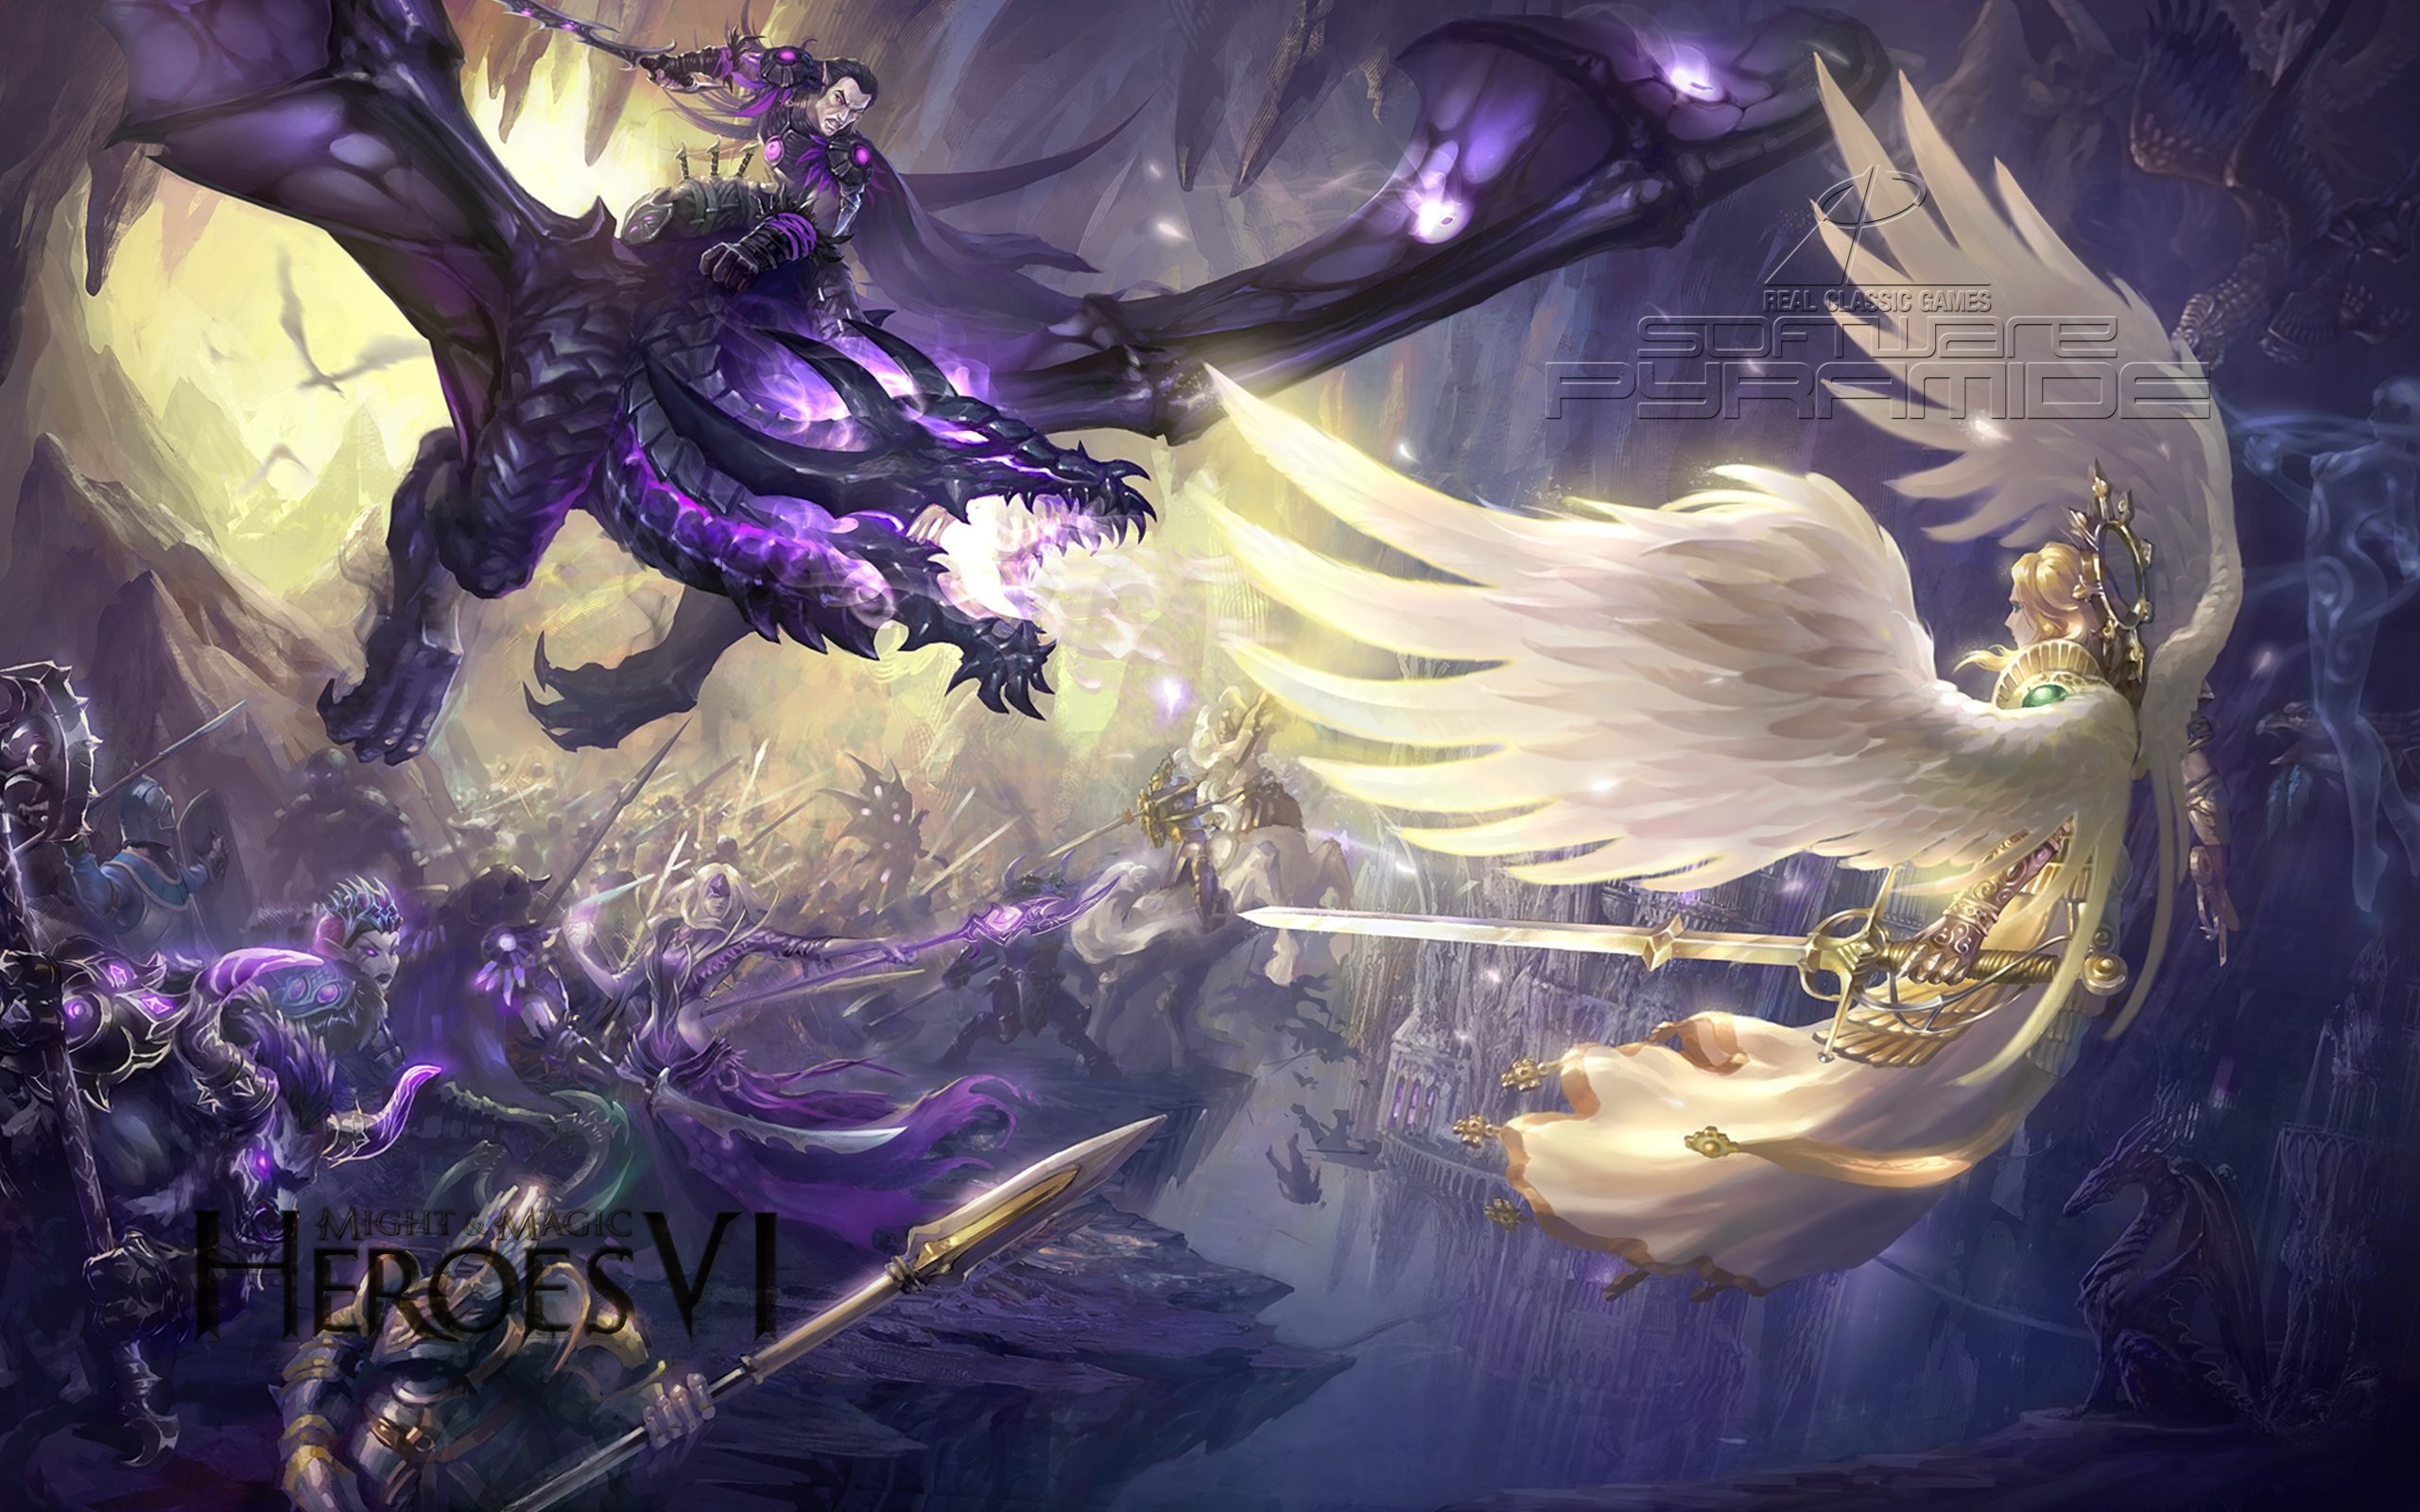 HEROES MIGHT MAGIC strategy fantasy fighting adventure action online 1hmm  warrior battle angel dragon wallpaper     622576   WallpaperUP